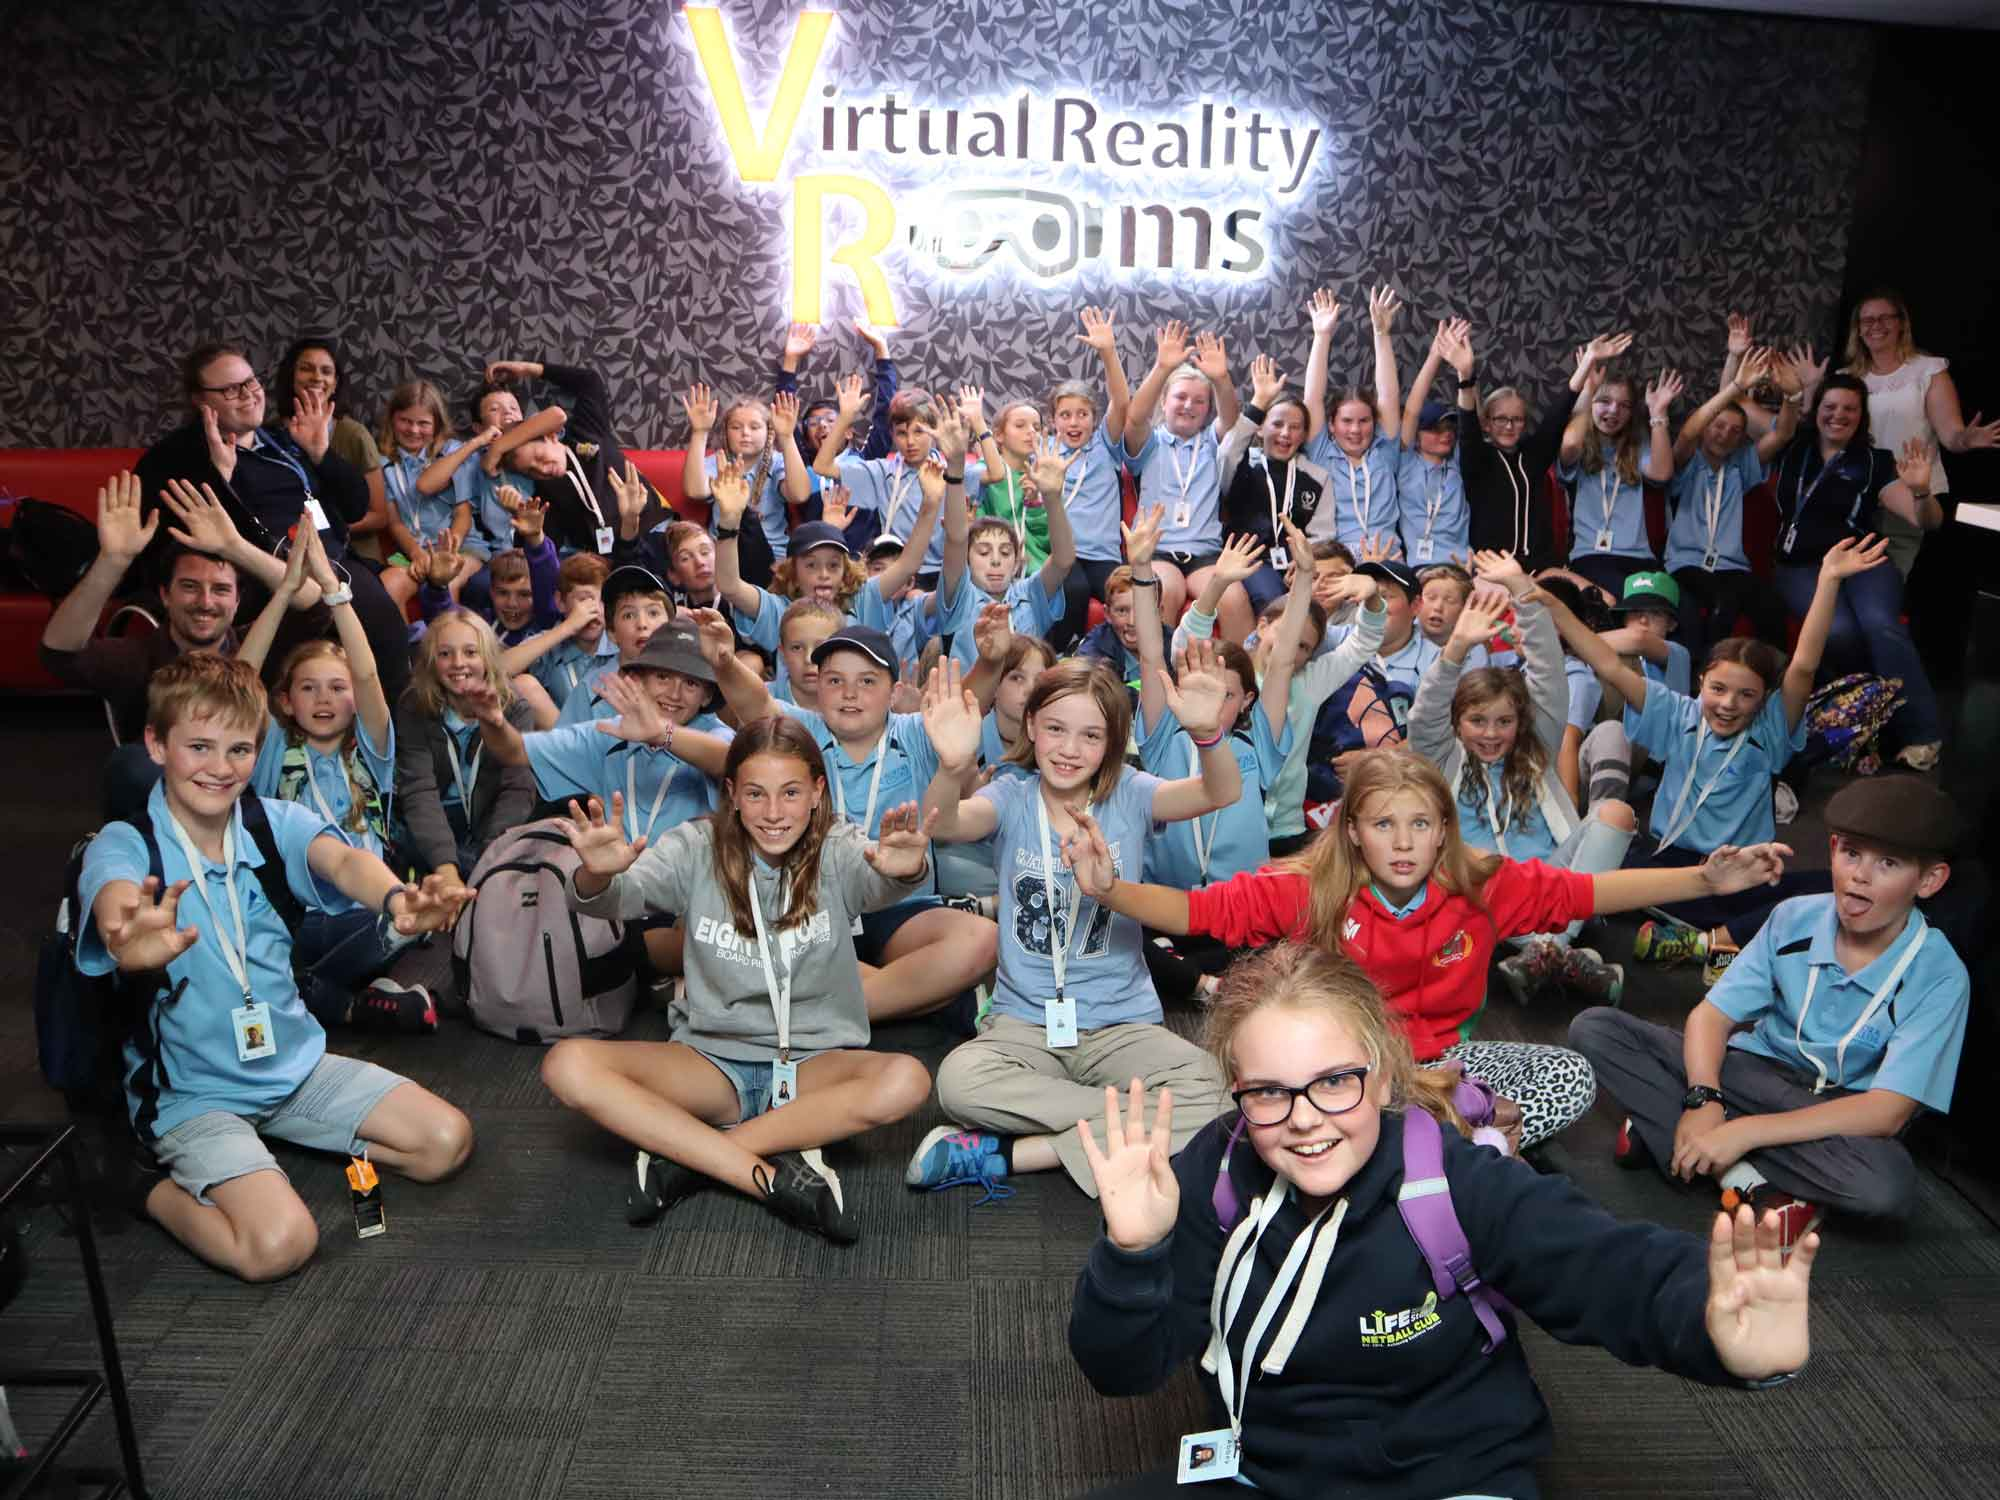 Schools Virtual Reality Rooms Various Ages